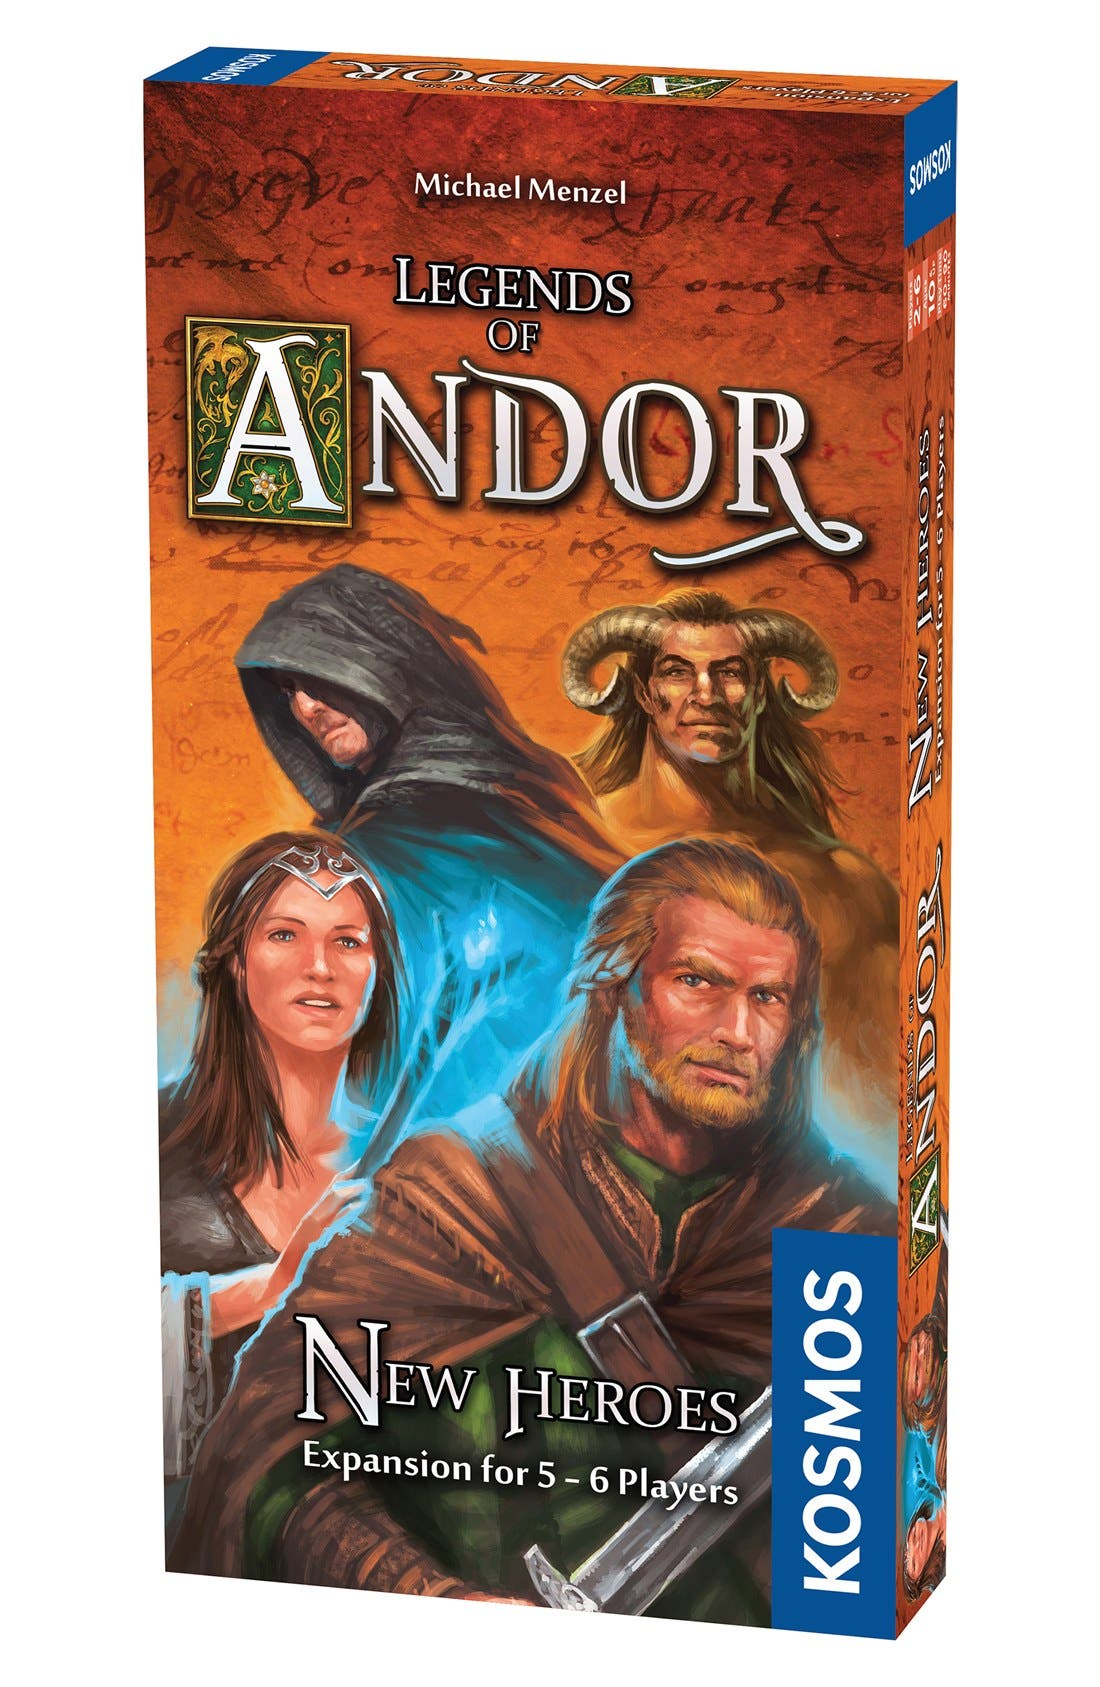 Thames & Kosmos 'Legends of Andor - New Heroes' Game Expansion Pack